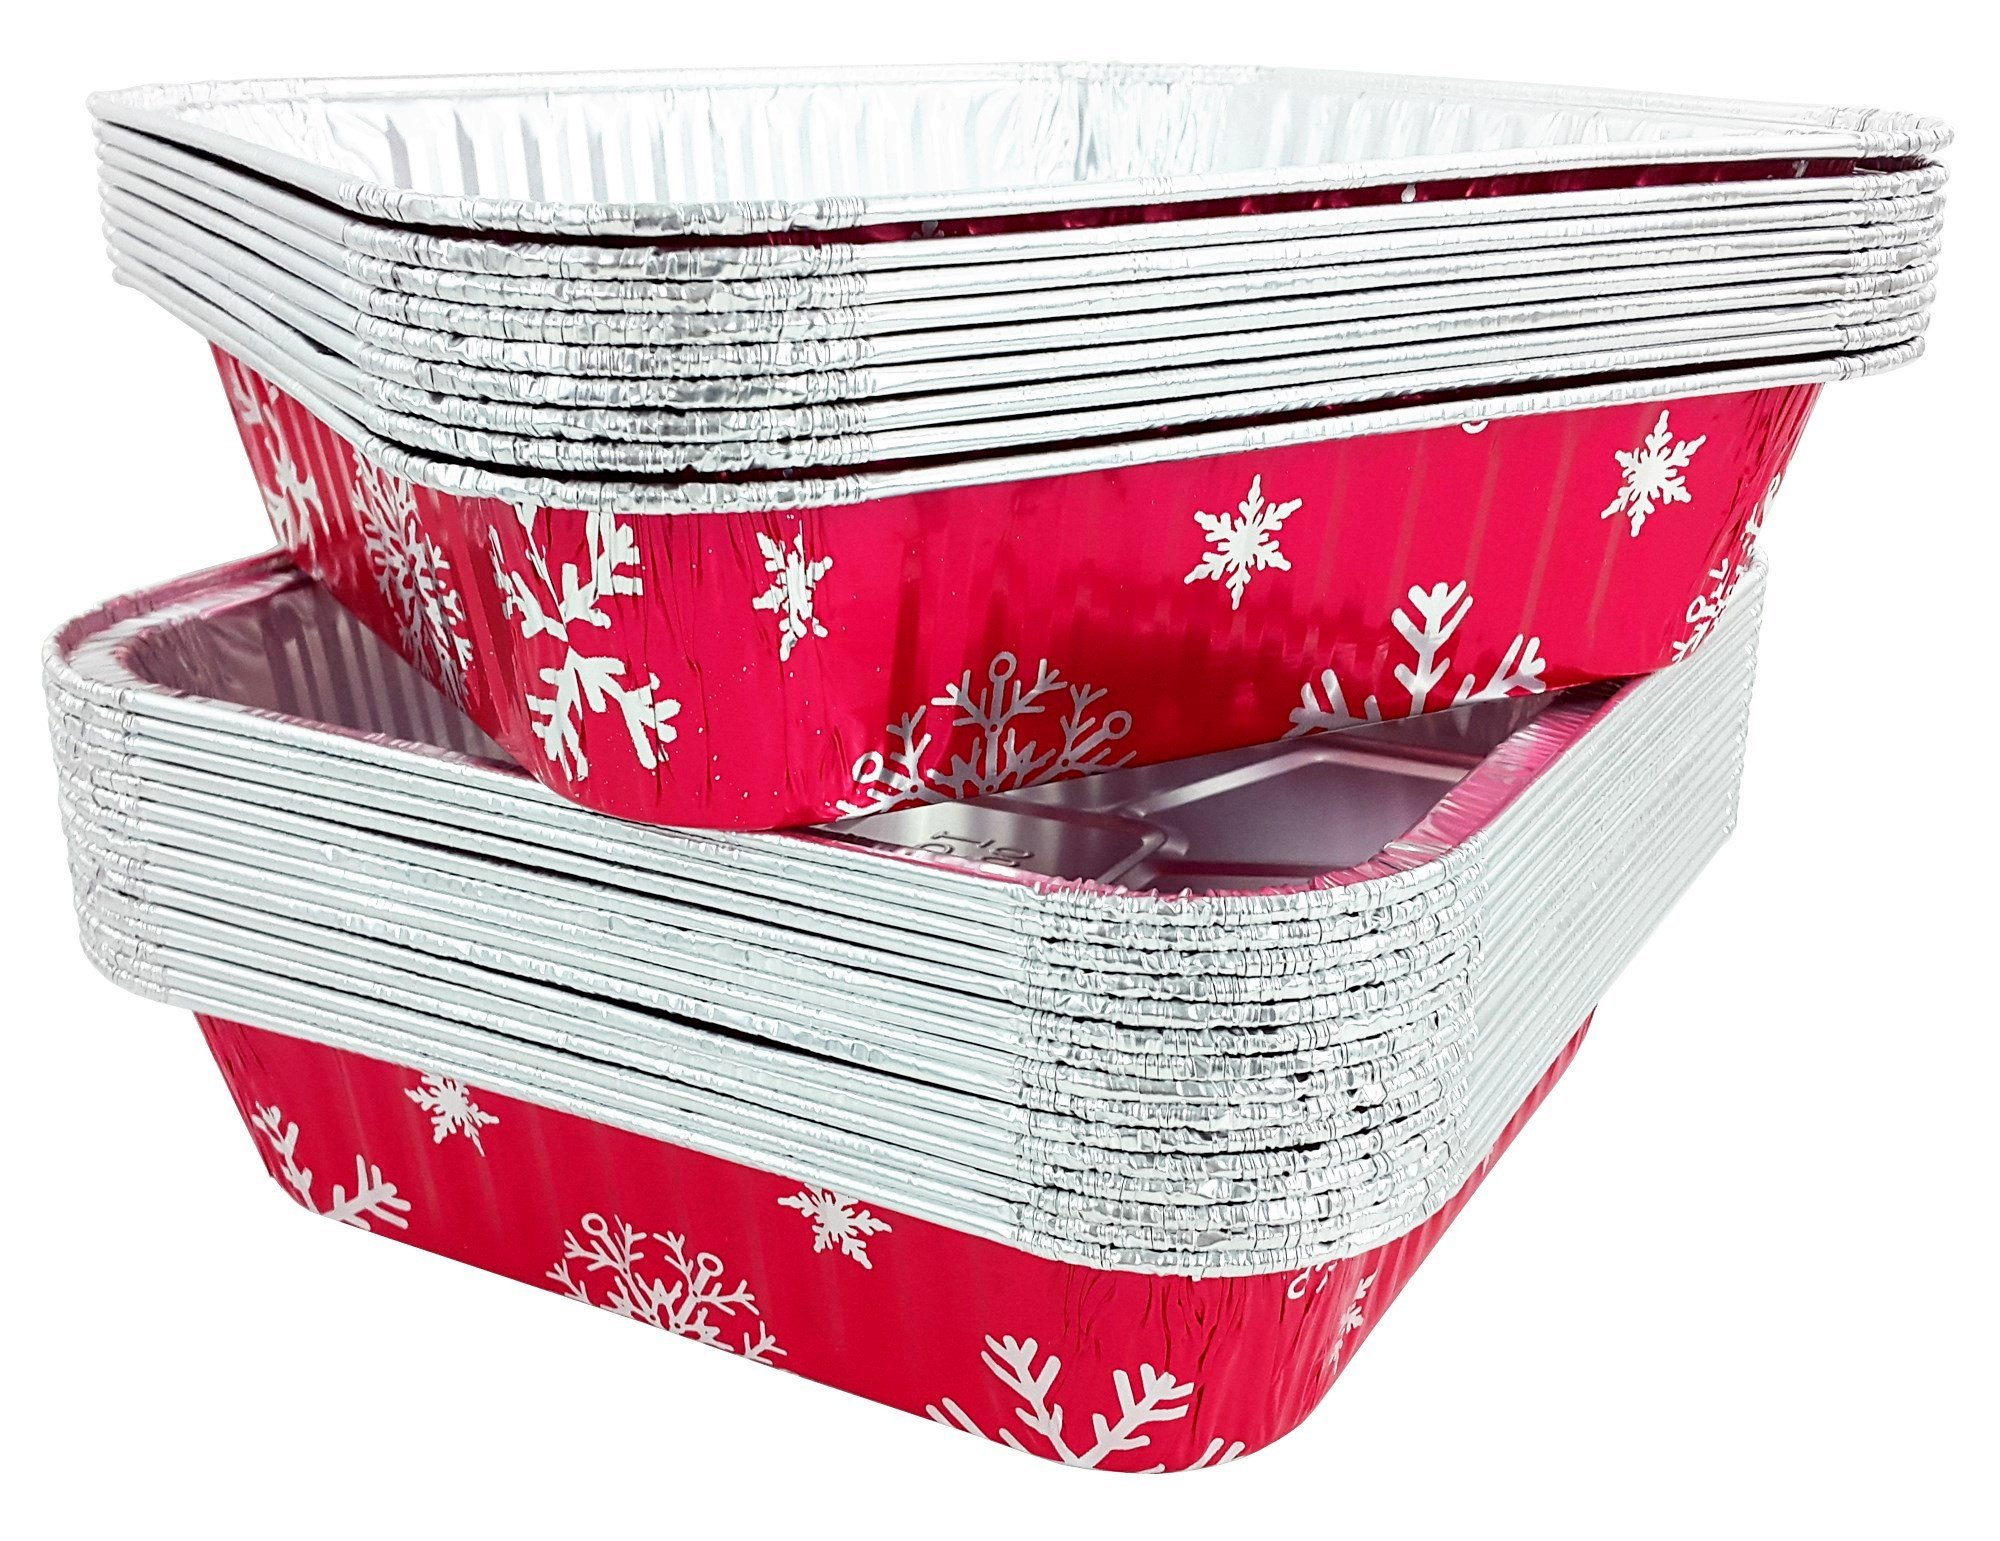 Pactogo Red Holiday Christmas Square Cake Aluminum Foil Pan w/Clear Dome Lid Disposable Baking Tins (Pack of 25 Sets) by PACTOGO (Image #1)